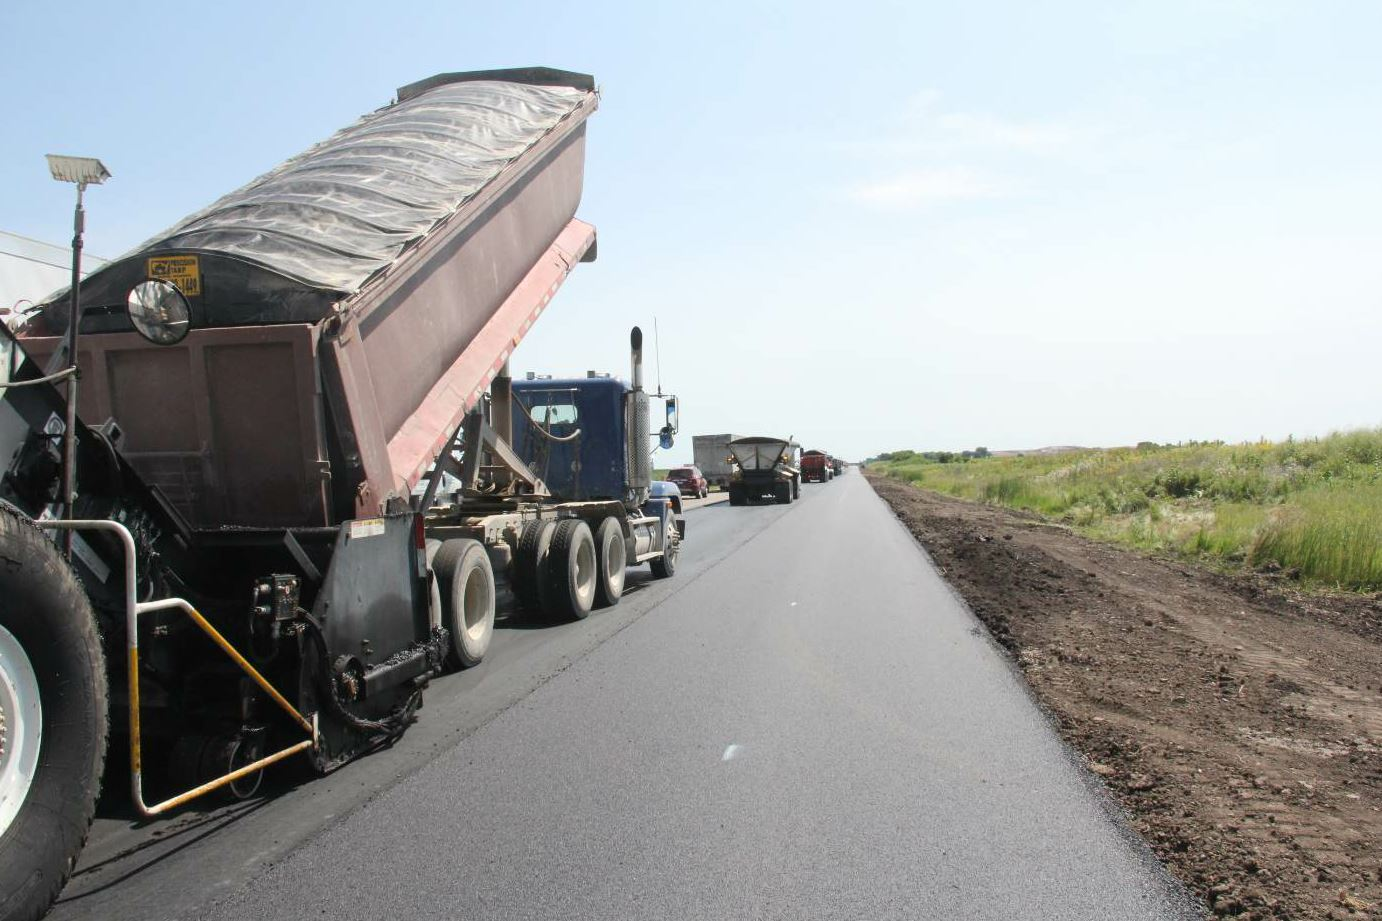 Both lanes of I-88 were overlayed. Both inside and outside shoulders were reconstructed.